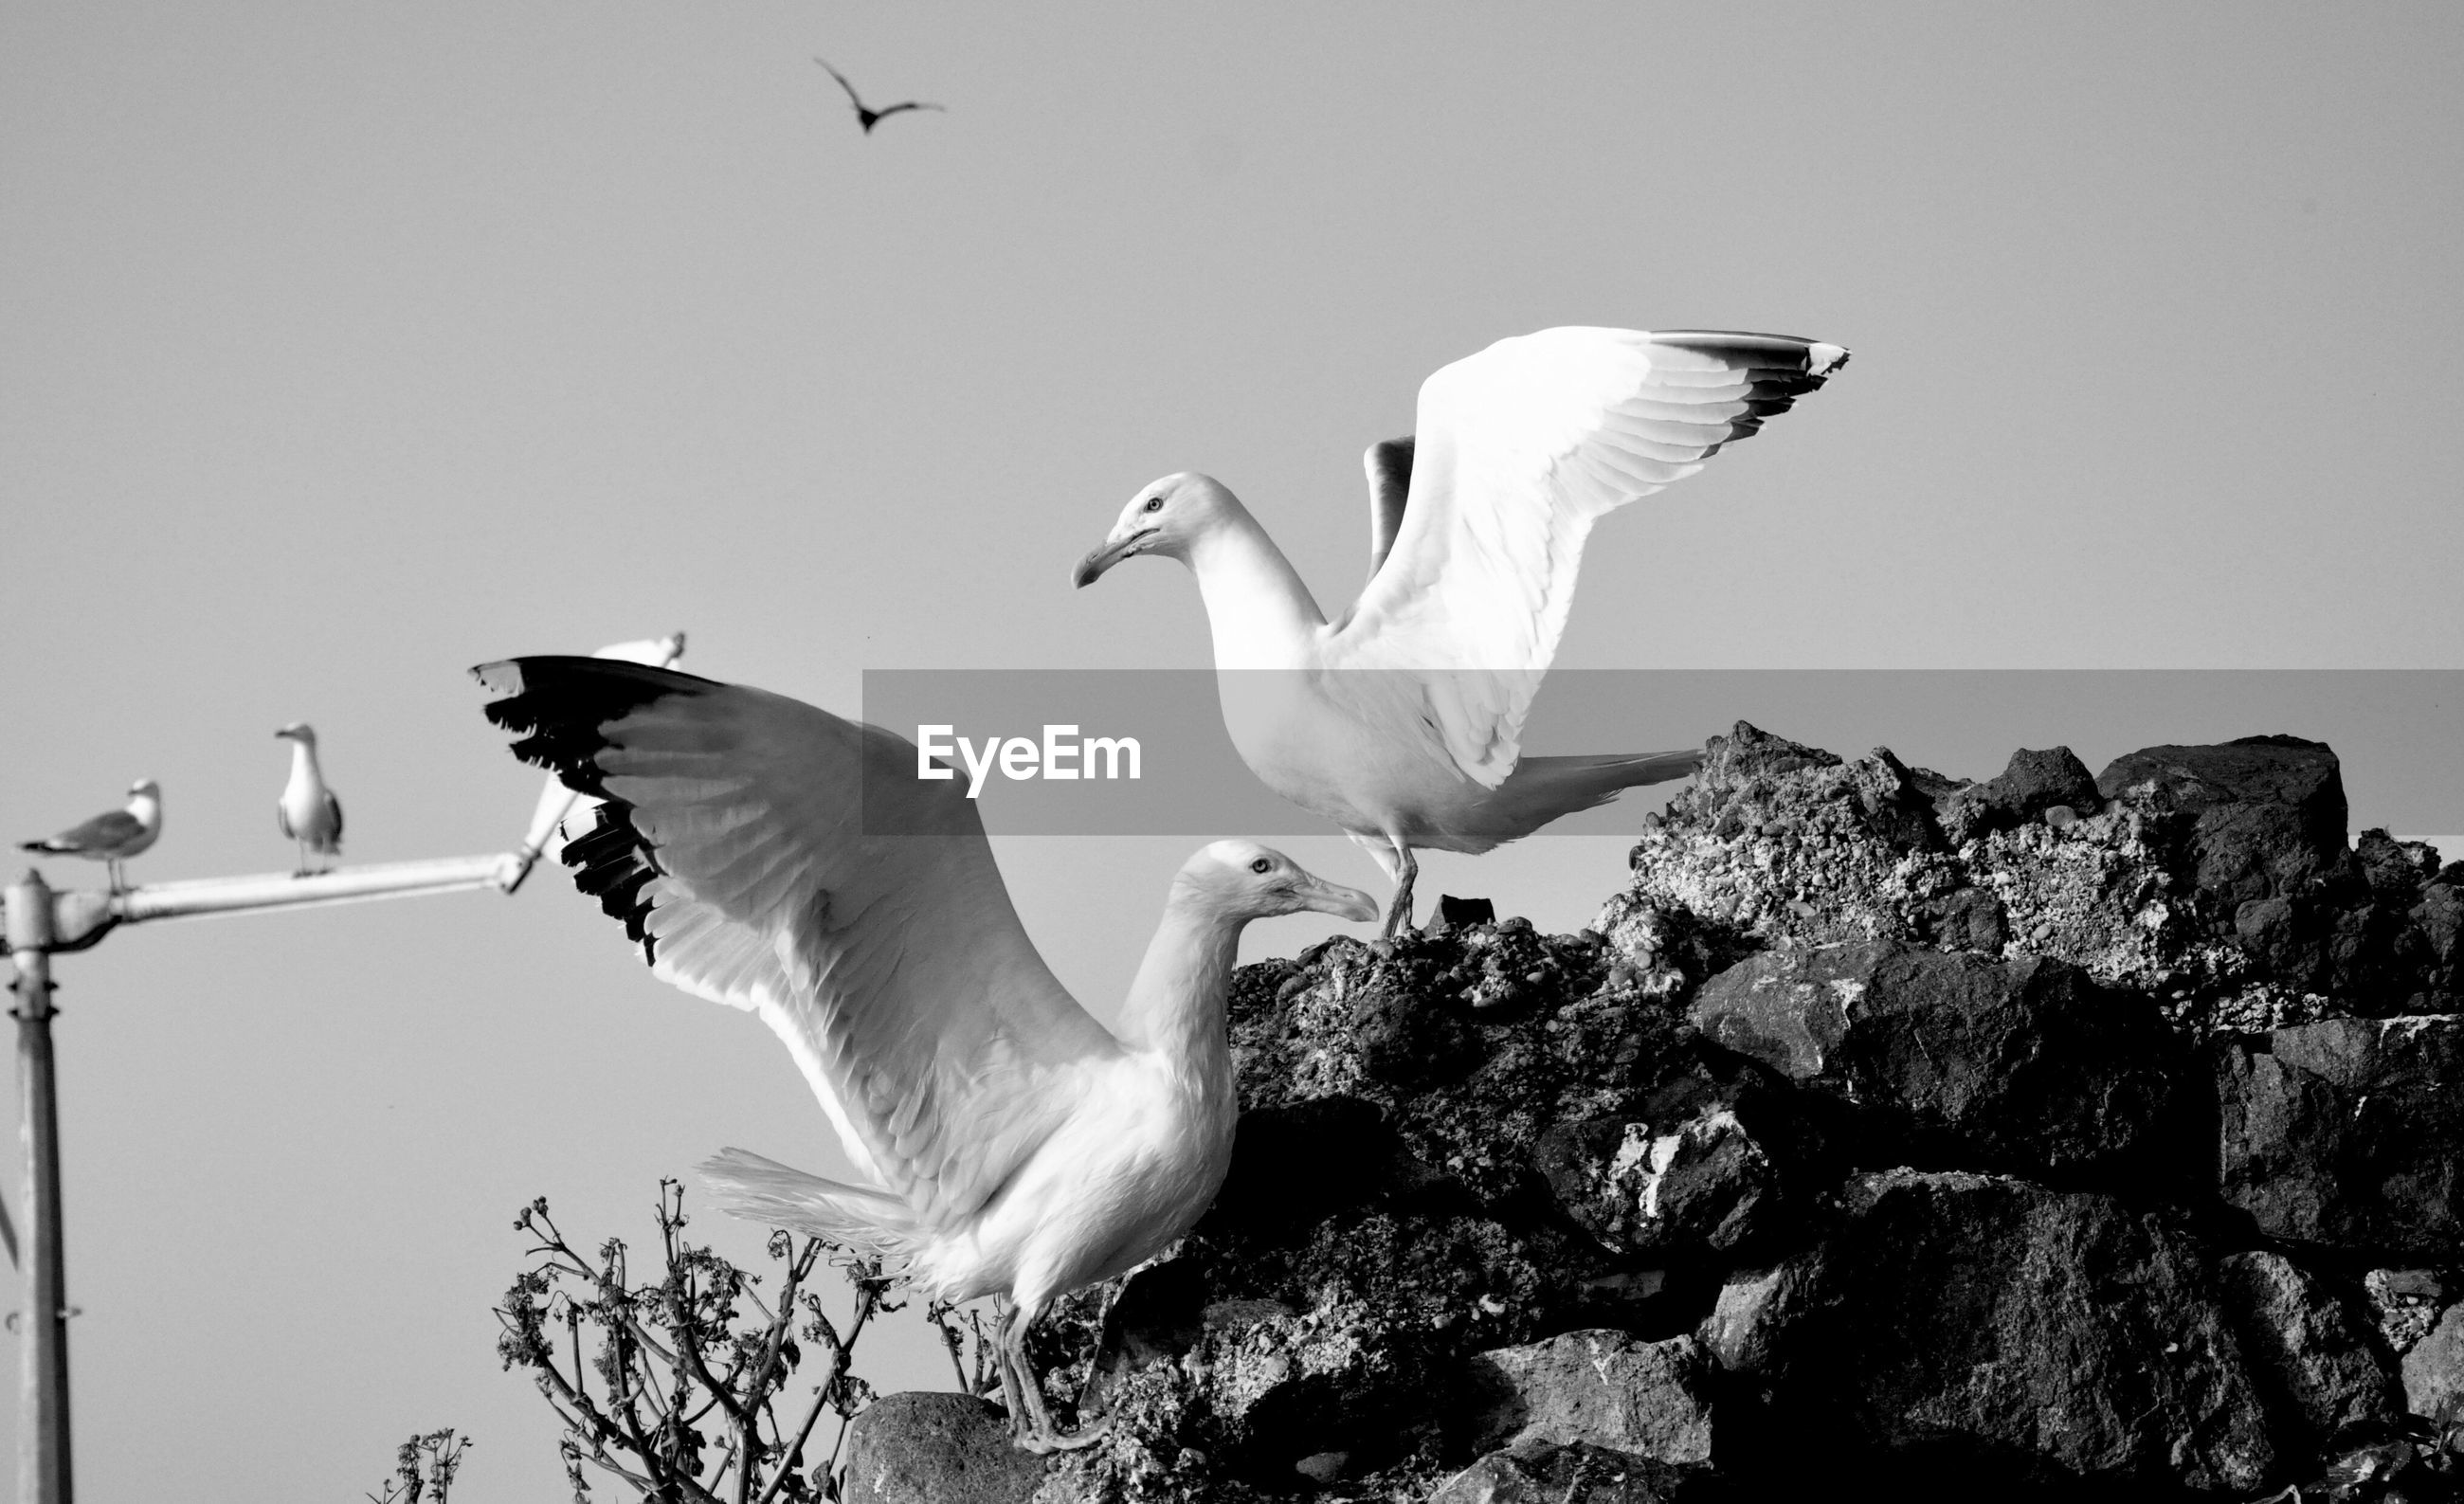 Close-up of seagulls perching on rocks against clear sky